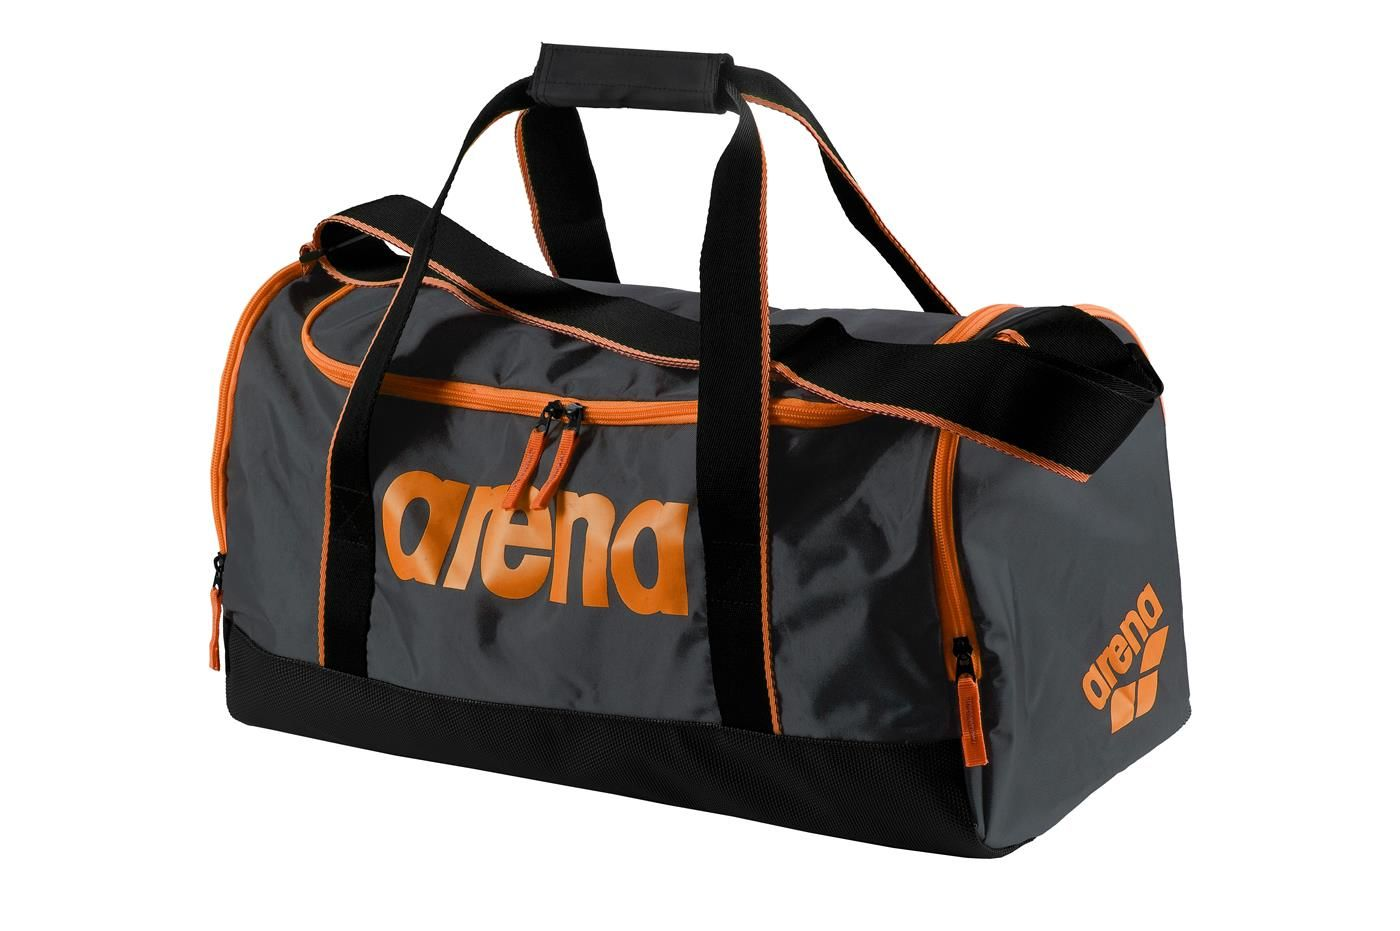 c4c63dc3f5fa2 Torba Arena Spiky 2 Medium